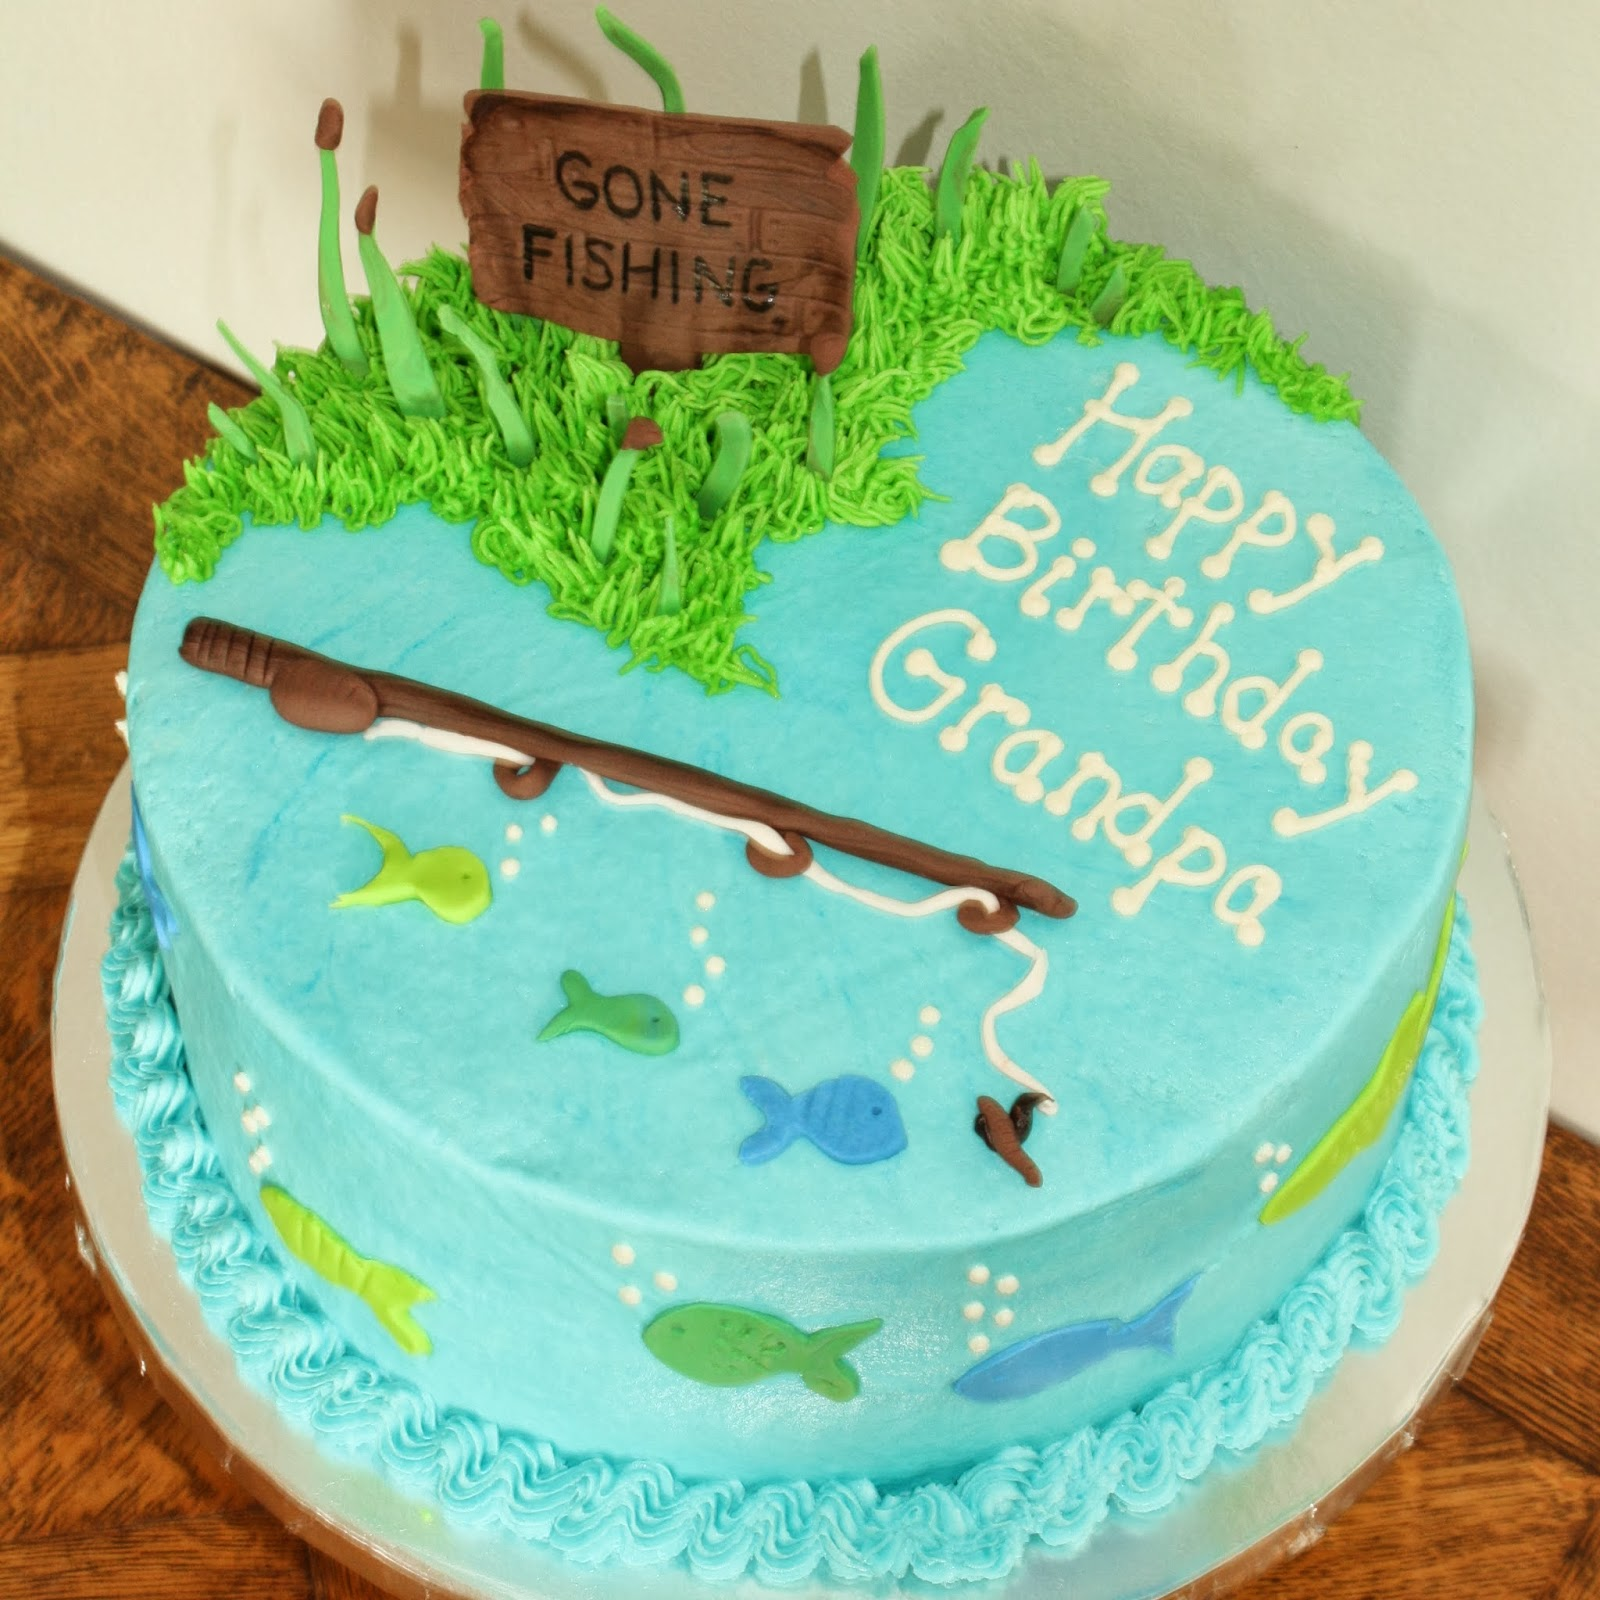 Kake: Gone Fishing Cake